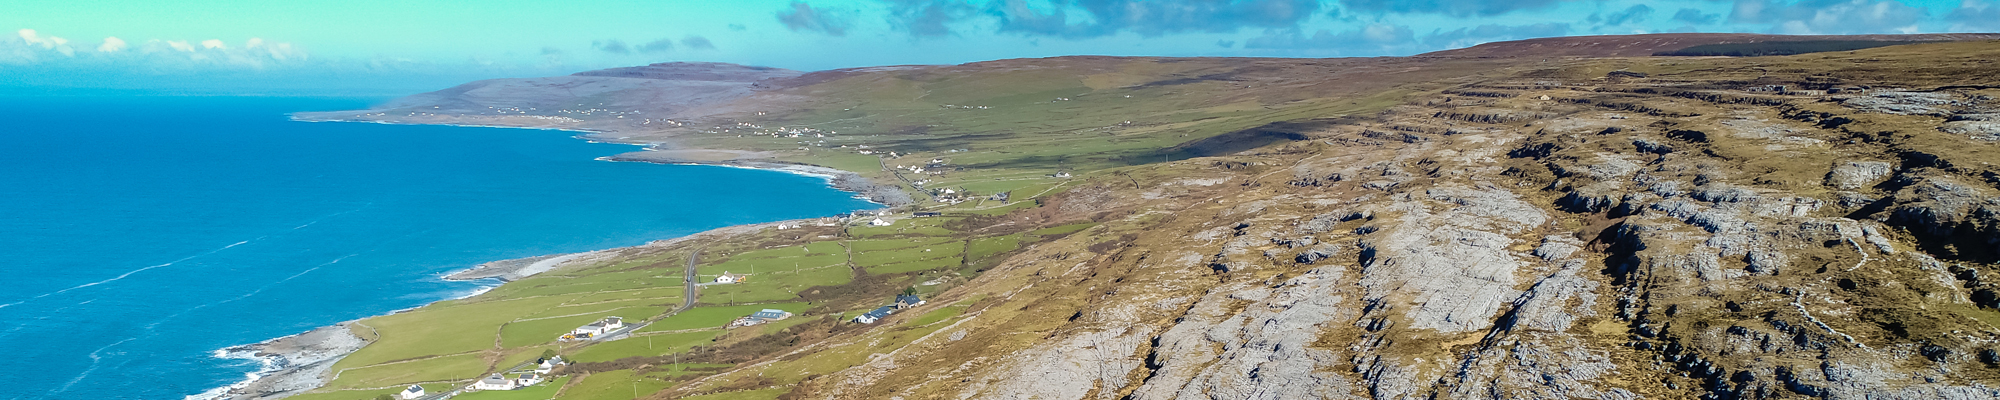 Aerial view over Fanore and Blackhead